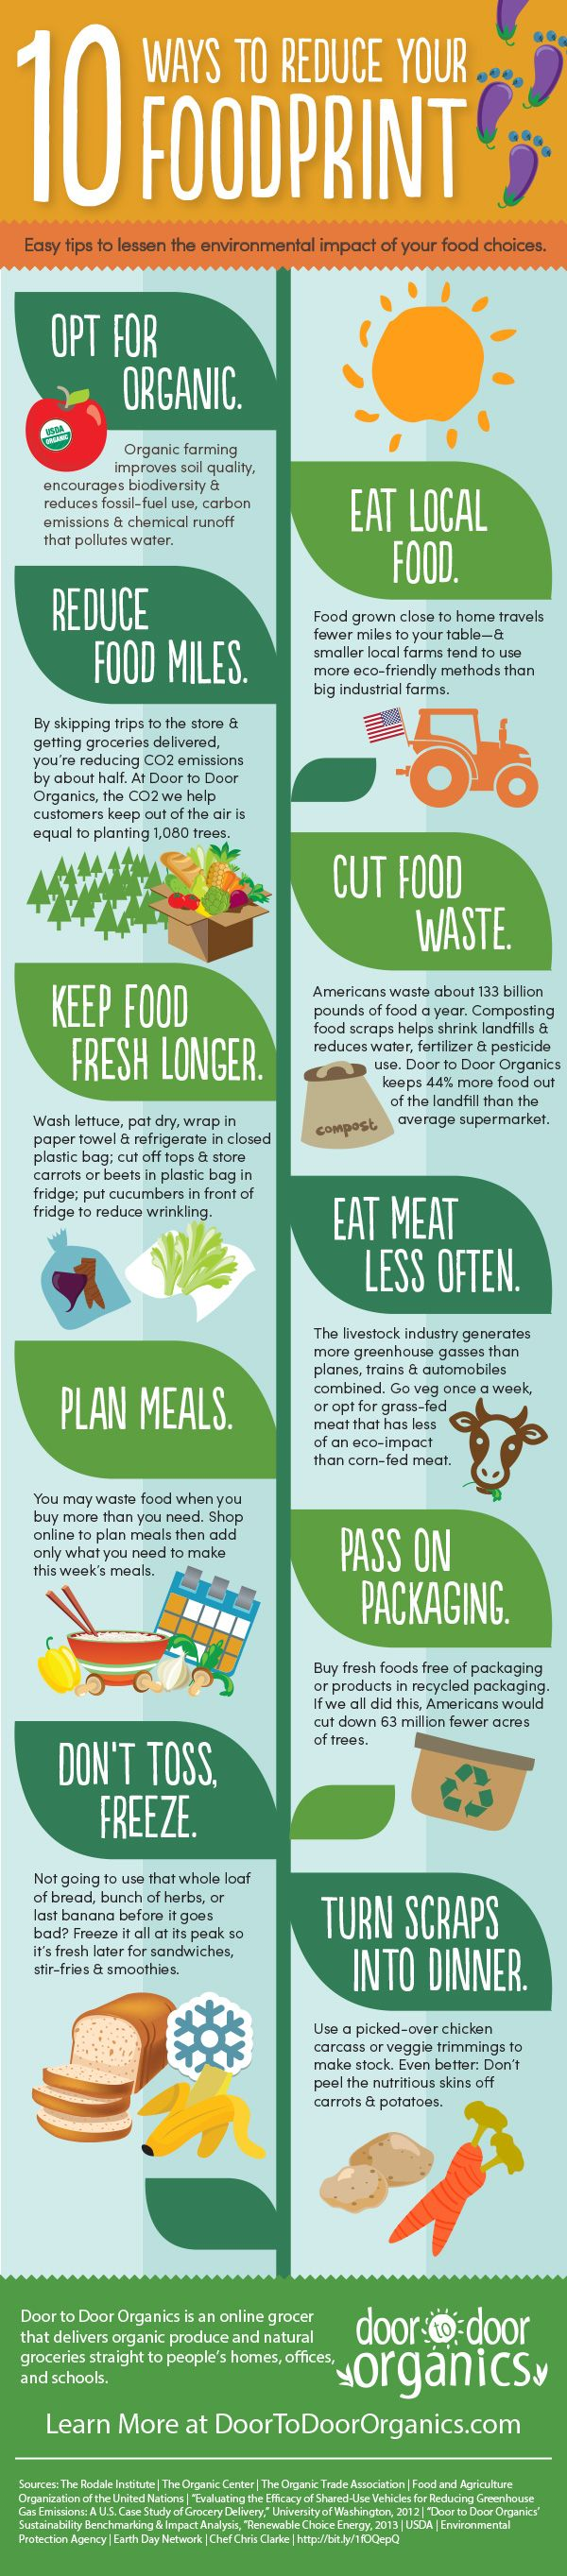 10 Ways to Reduce Your Foodprint | From @DoorToDoorOrganics